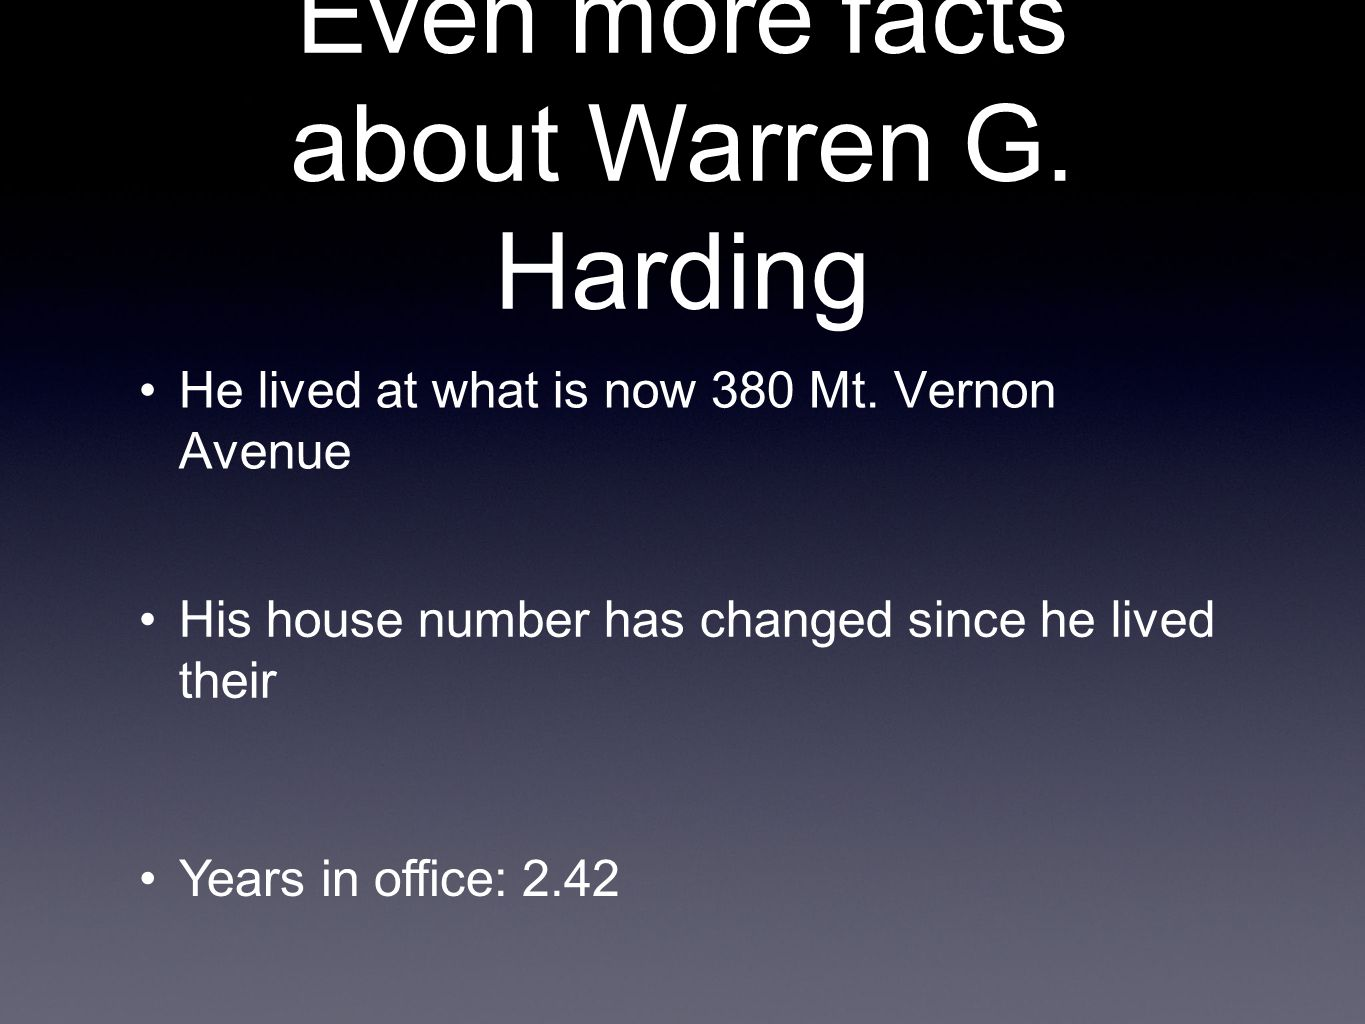 Even more facts about Warren G. Harding